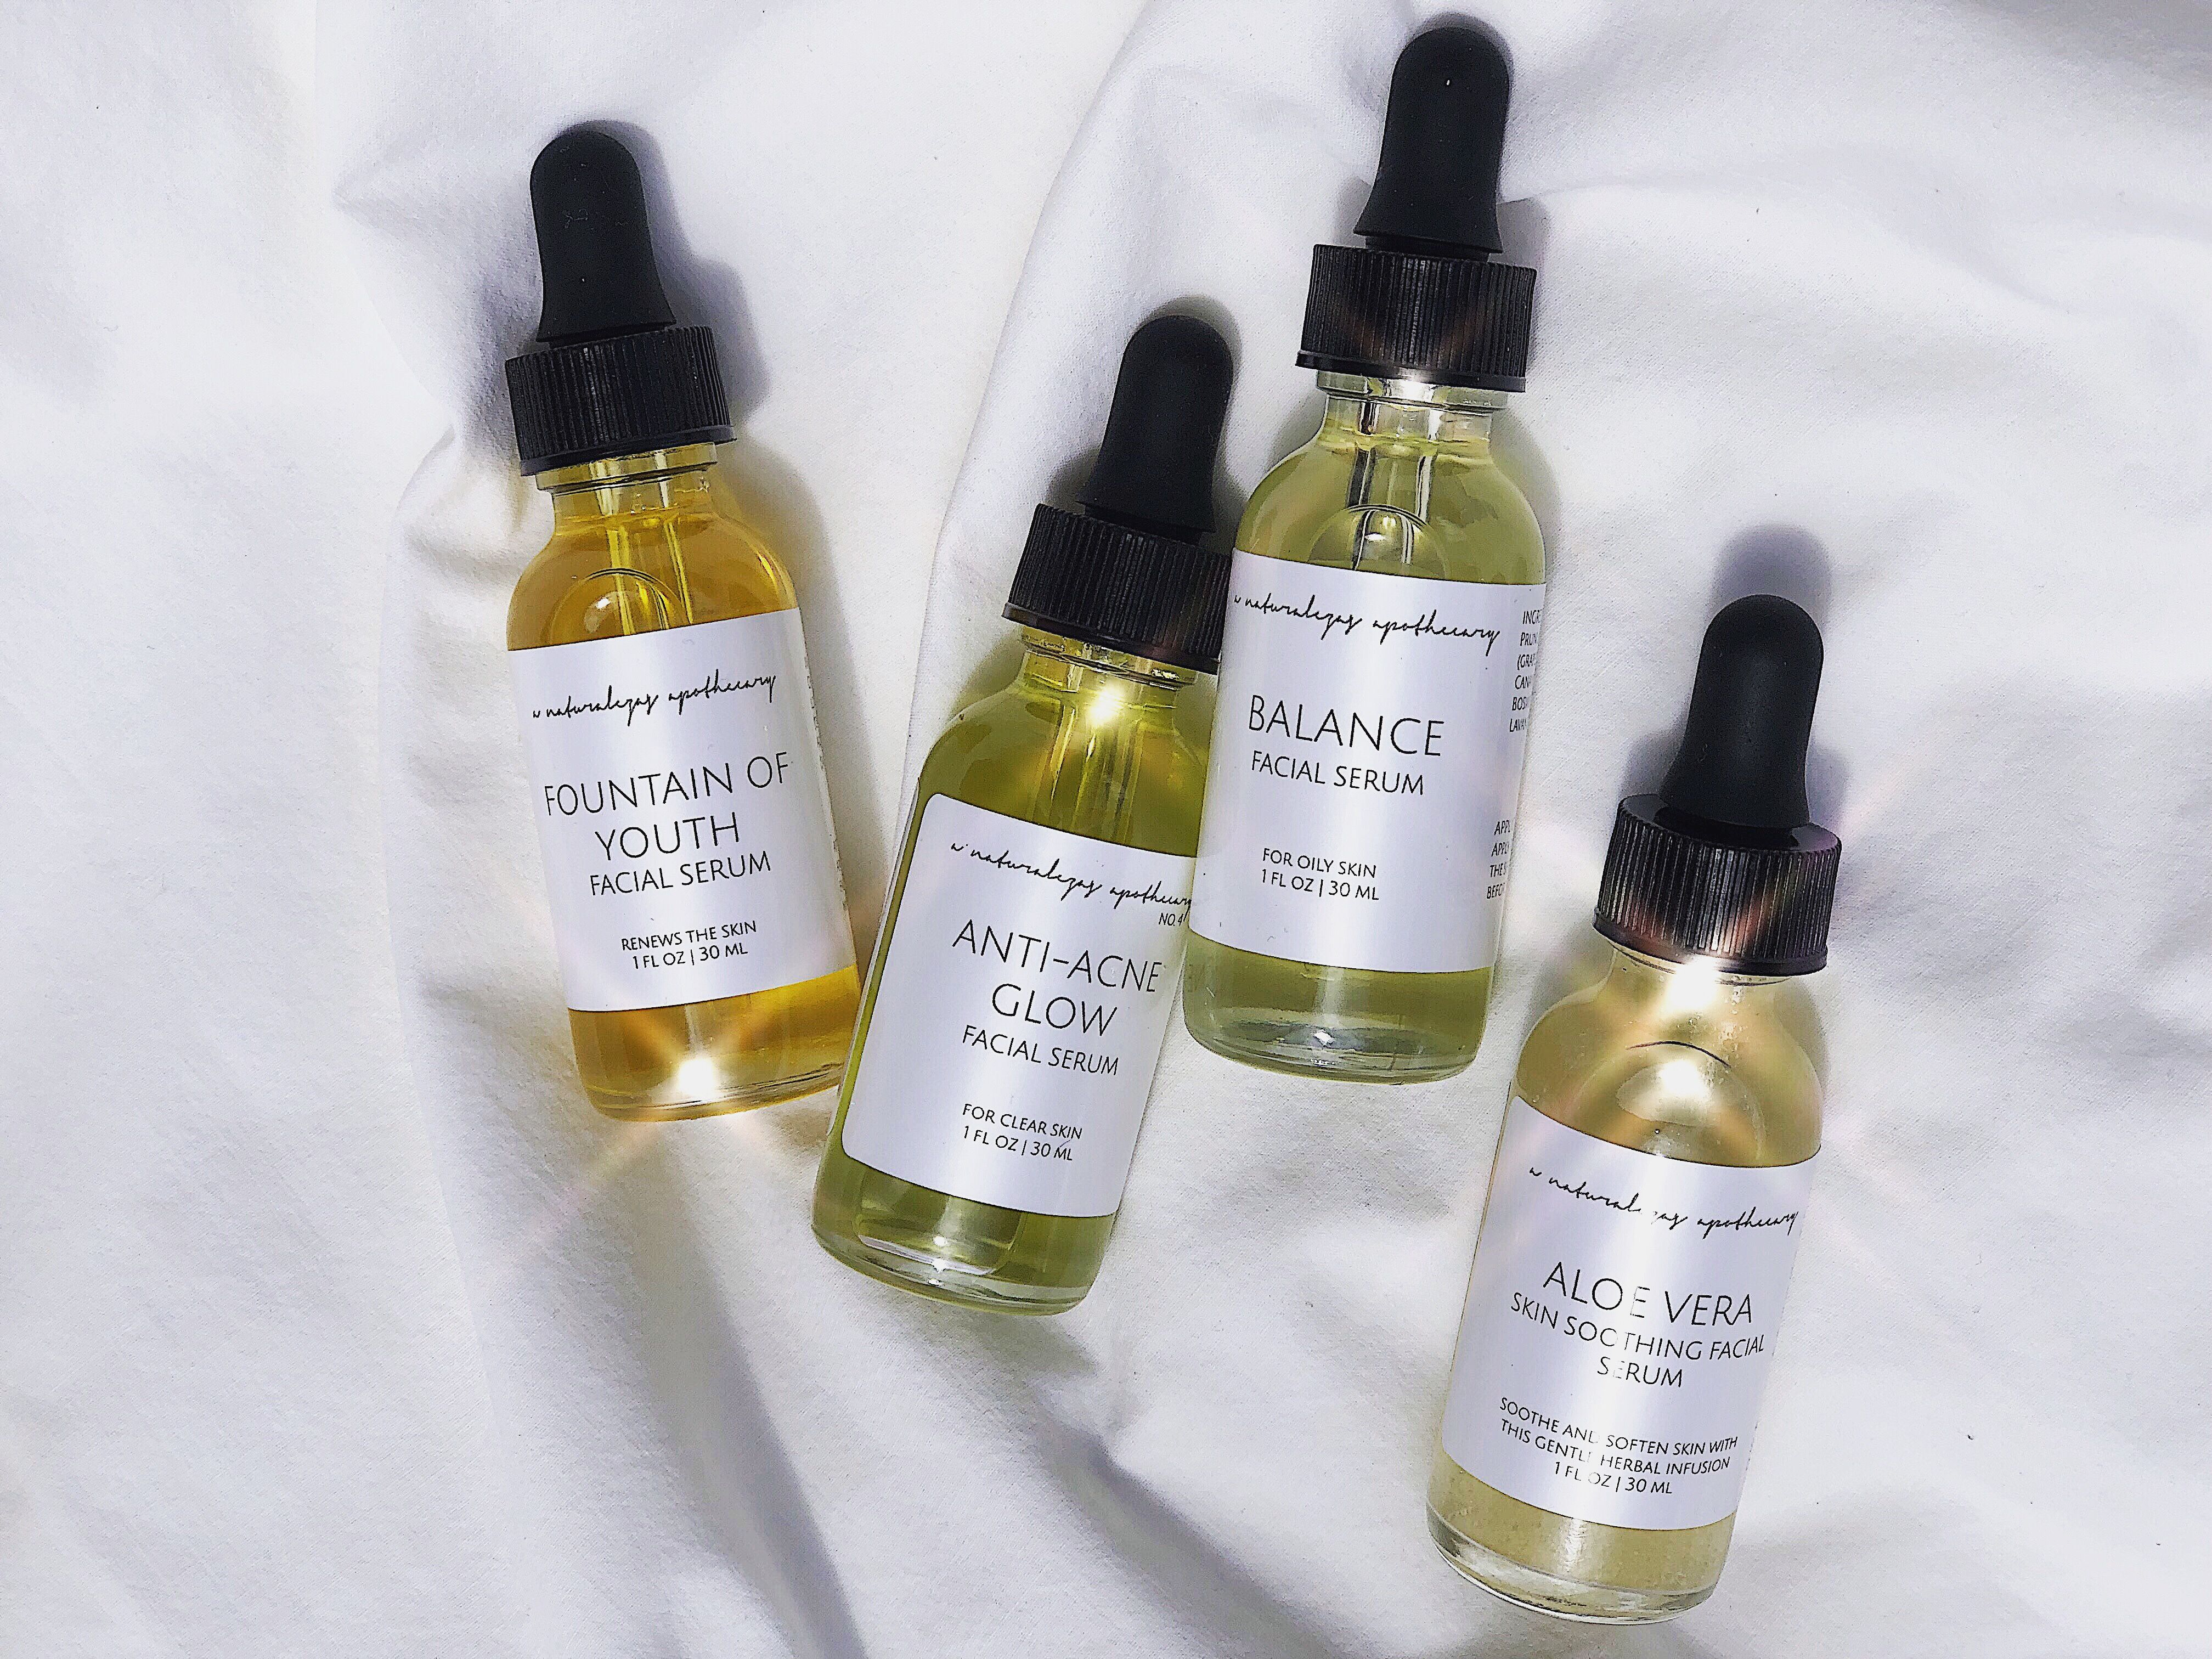 These facial serums make for the perfect plantbased